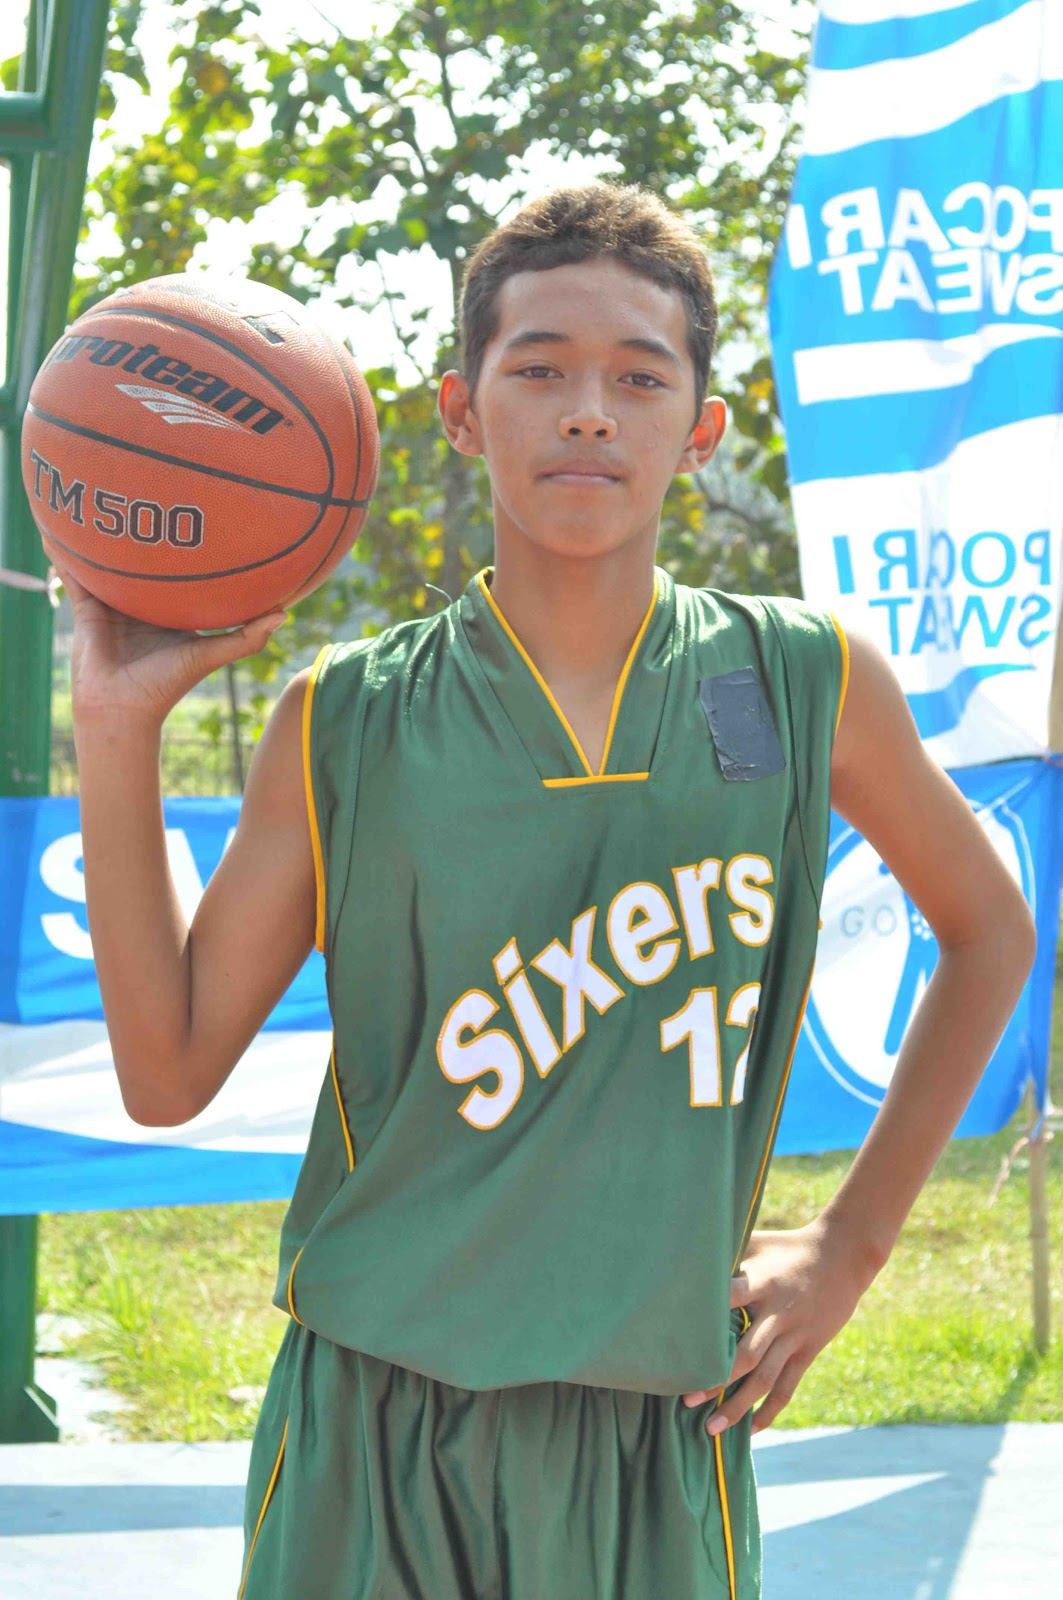 UNESA BASKETBALL COMPETITION